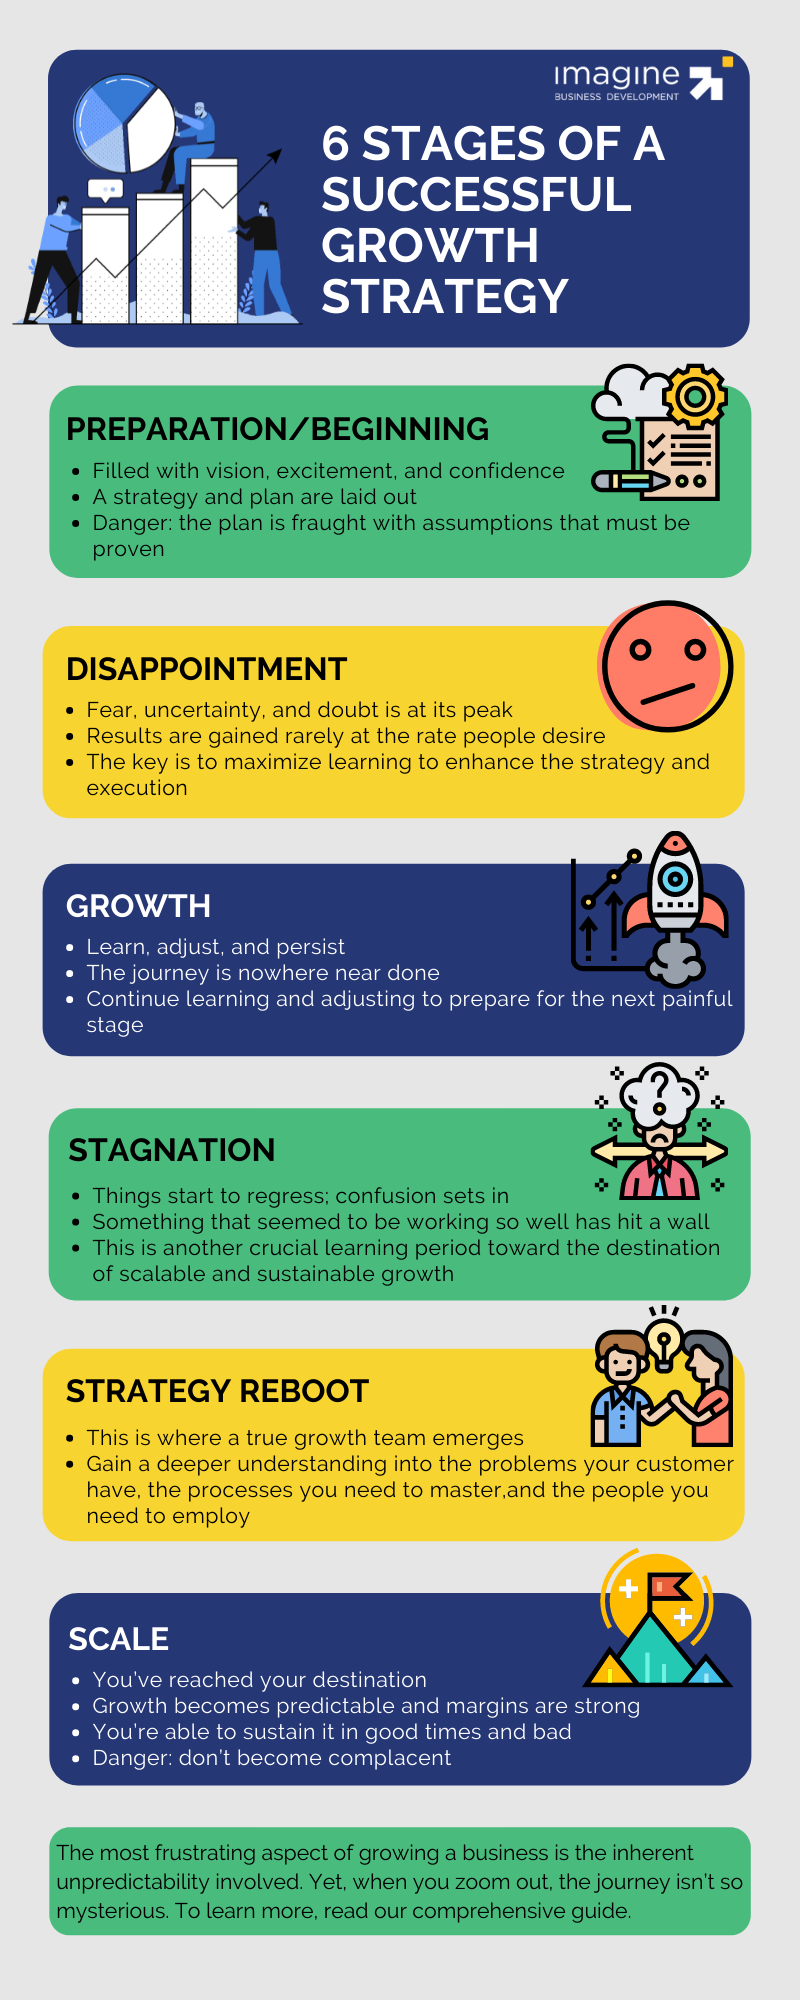 6 Stages of a Successful Growth Strategy